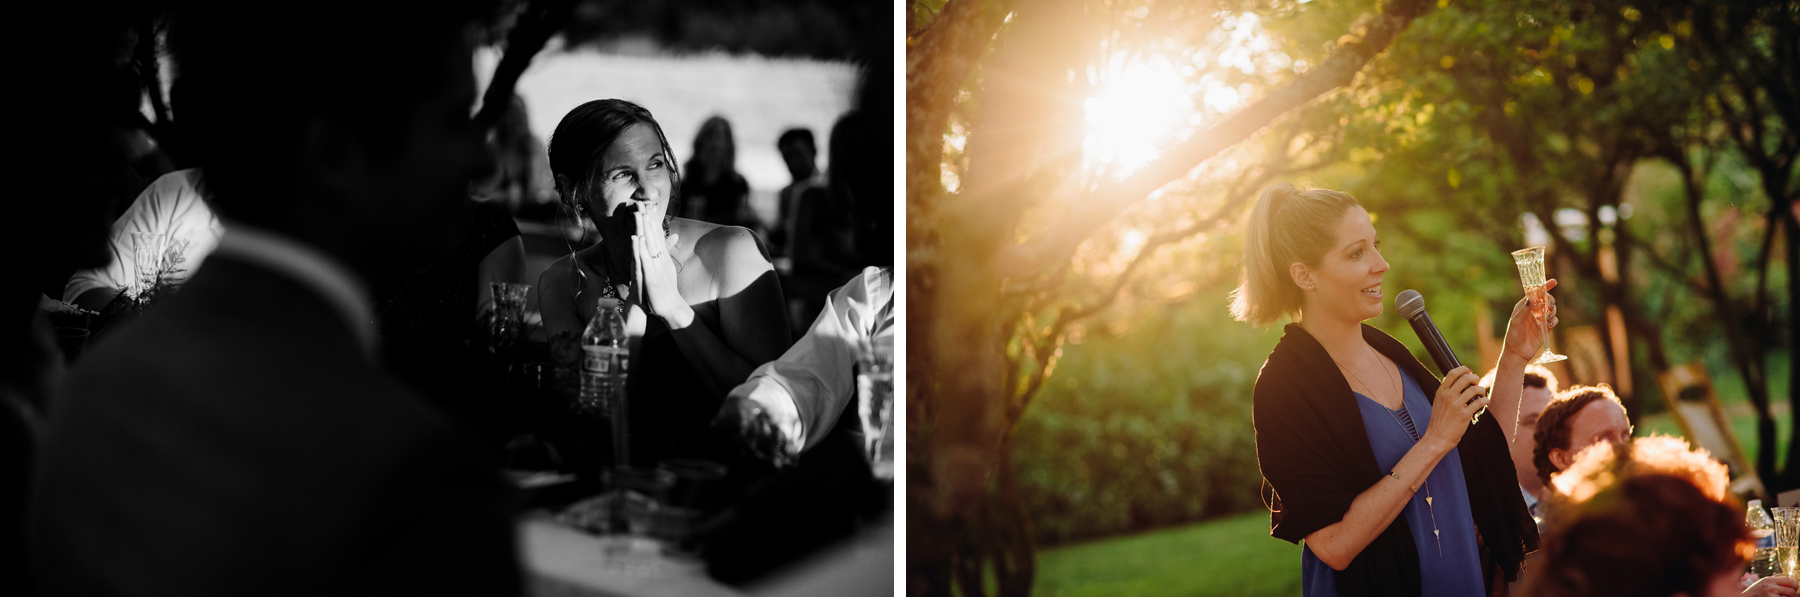 Center for Urban Horticulture Wedding toasts